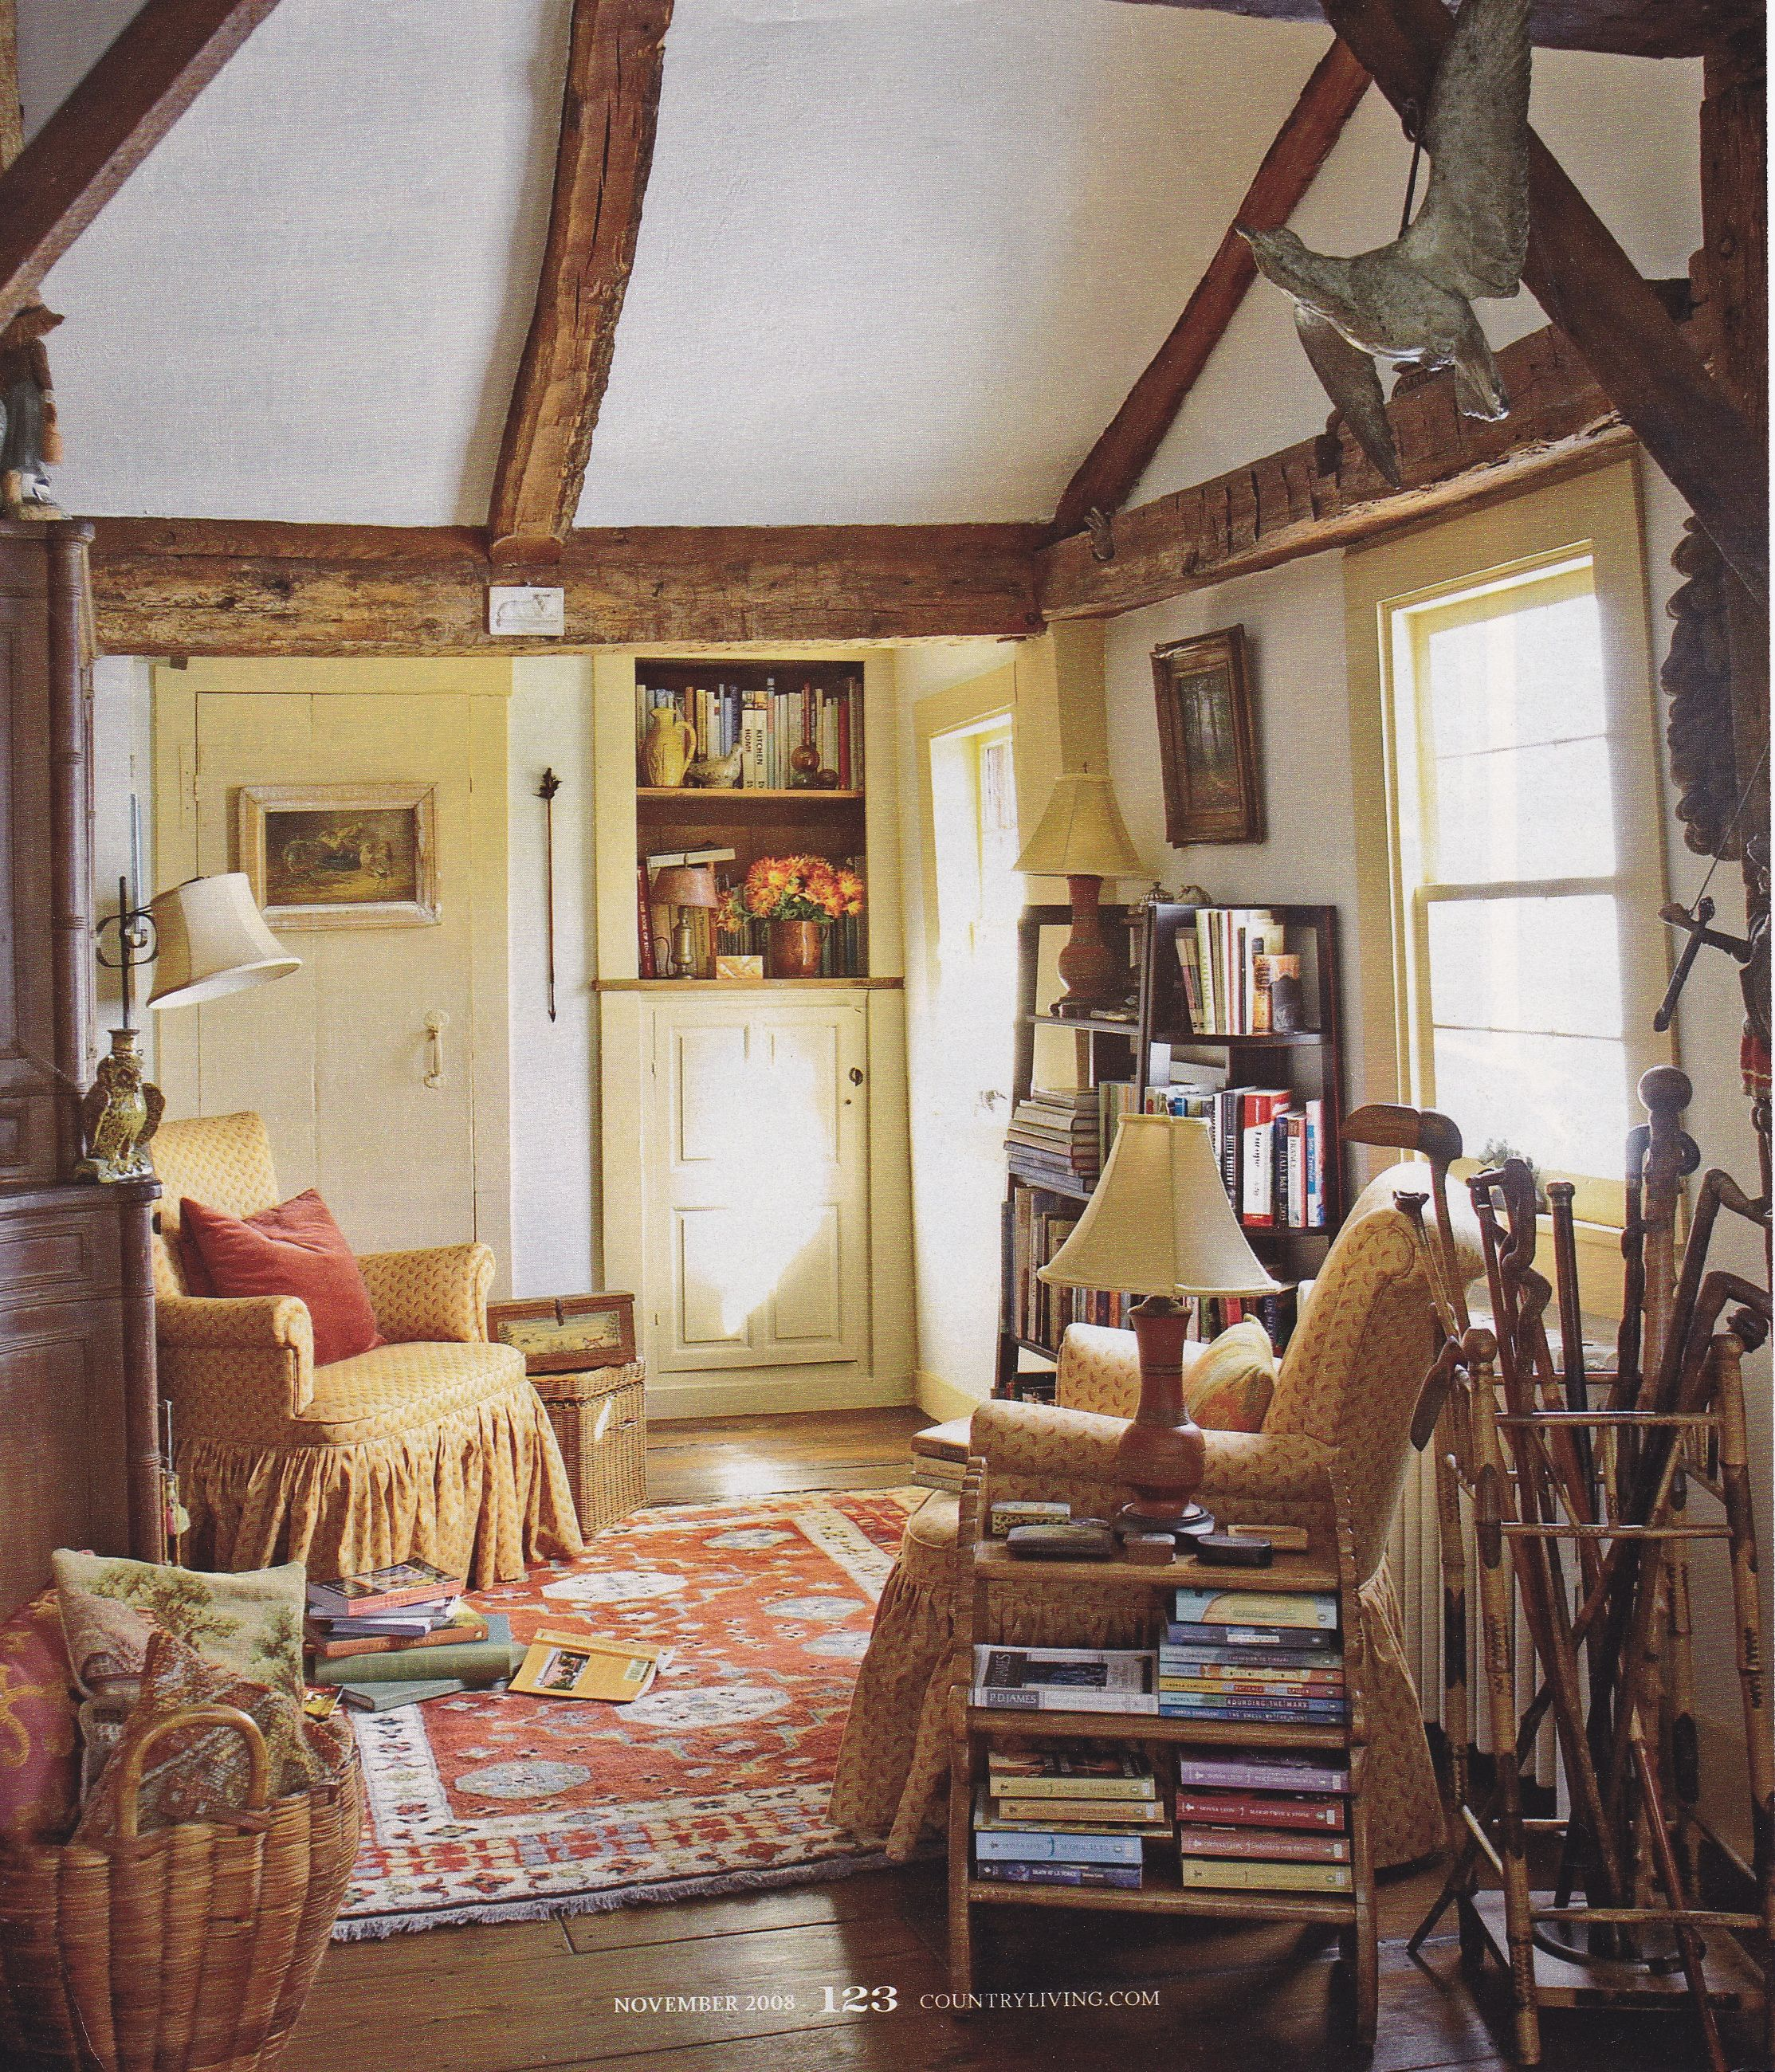 Country Bedroom Ideas For A Stylish Lifestyle Nowadays: Very Much Like The Style Of This Cozy English Cottage Room